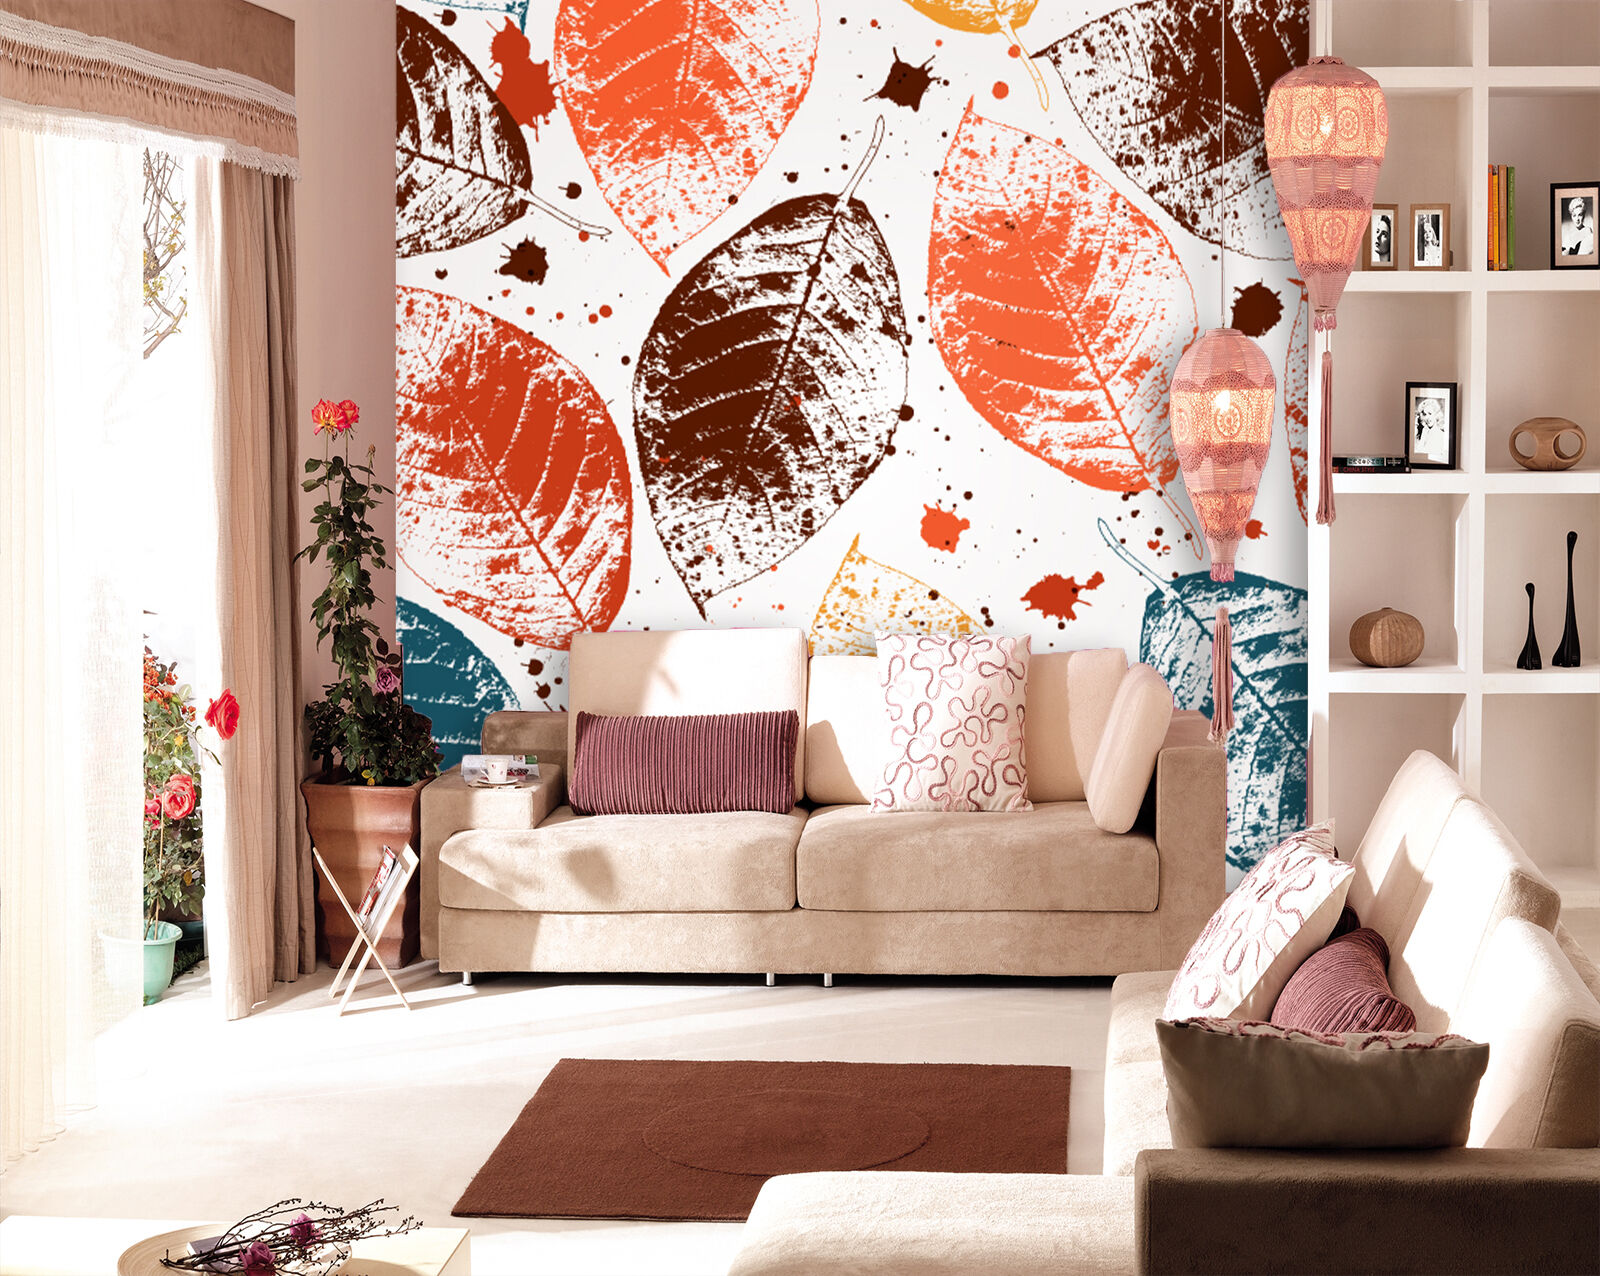 3D pigment Farbeful leaf Wall Paper wall Print Decal Wall Deco Indoor wall Mural